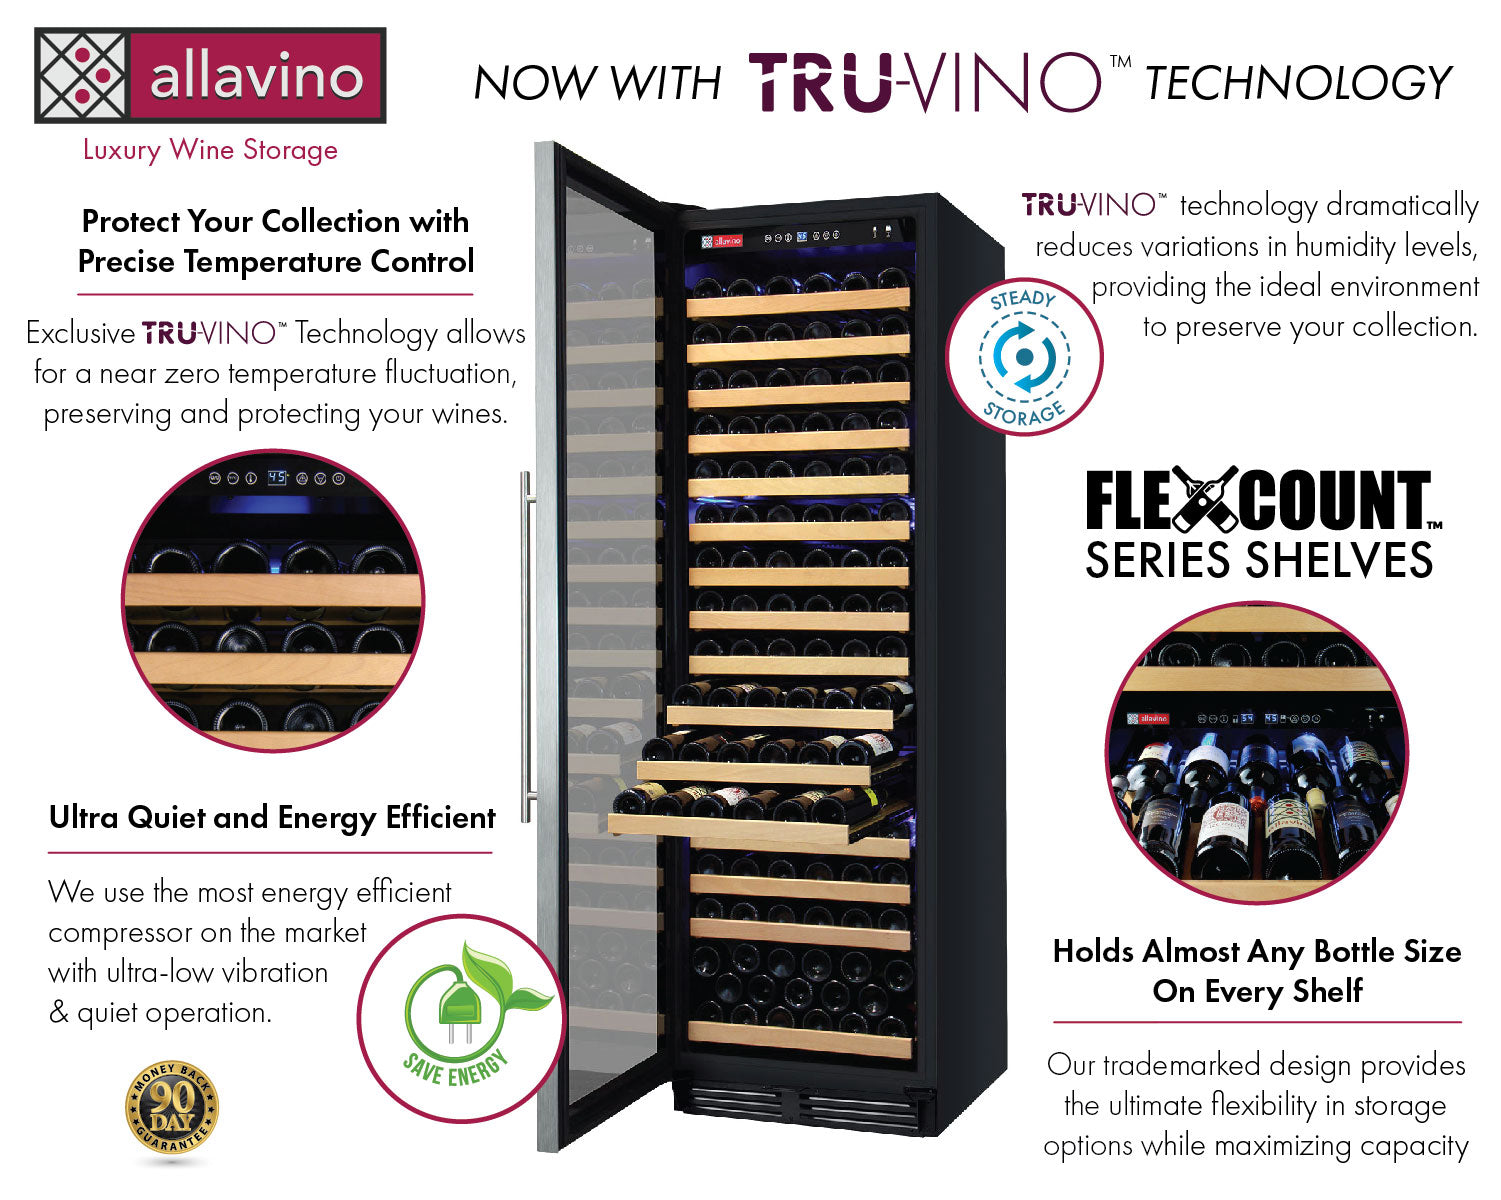 Allavino FlexCount Classic II Tru-Vino 174 Bottle Single Zone Stainless Steel Left Hinge Wine Fridge YHWR174-1SL20